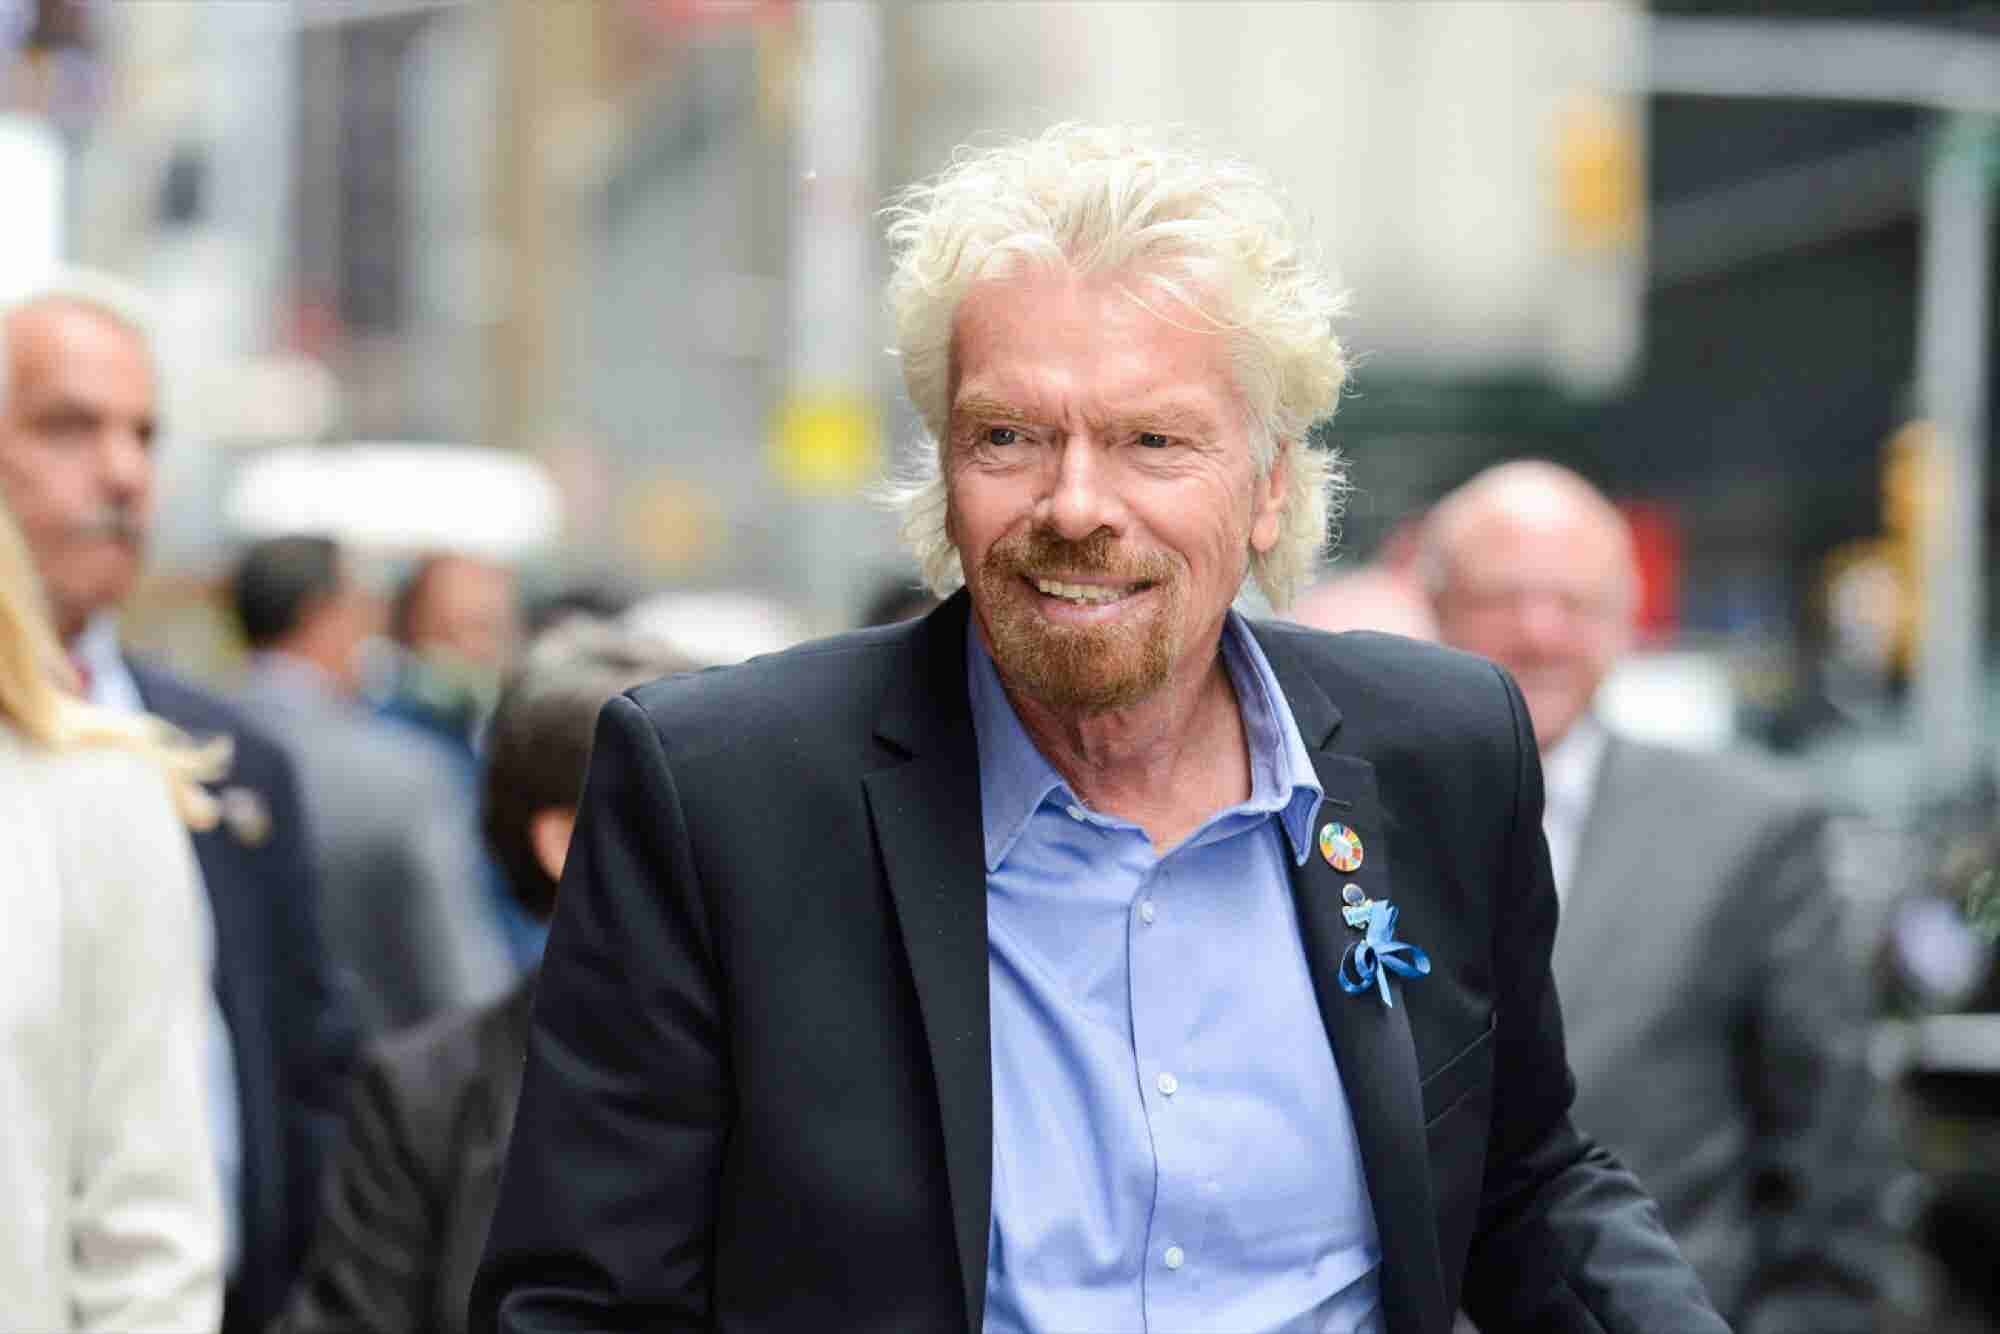 How Richard Branson Built His $5 Billion Fortune